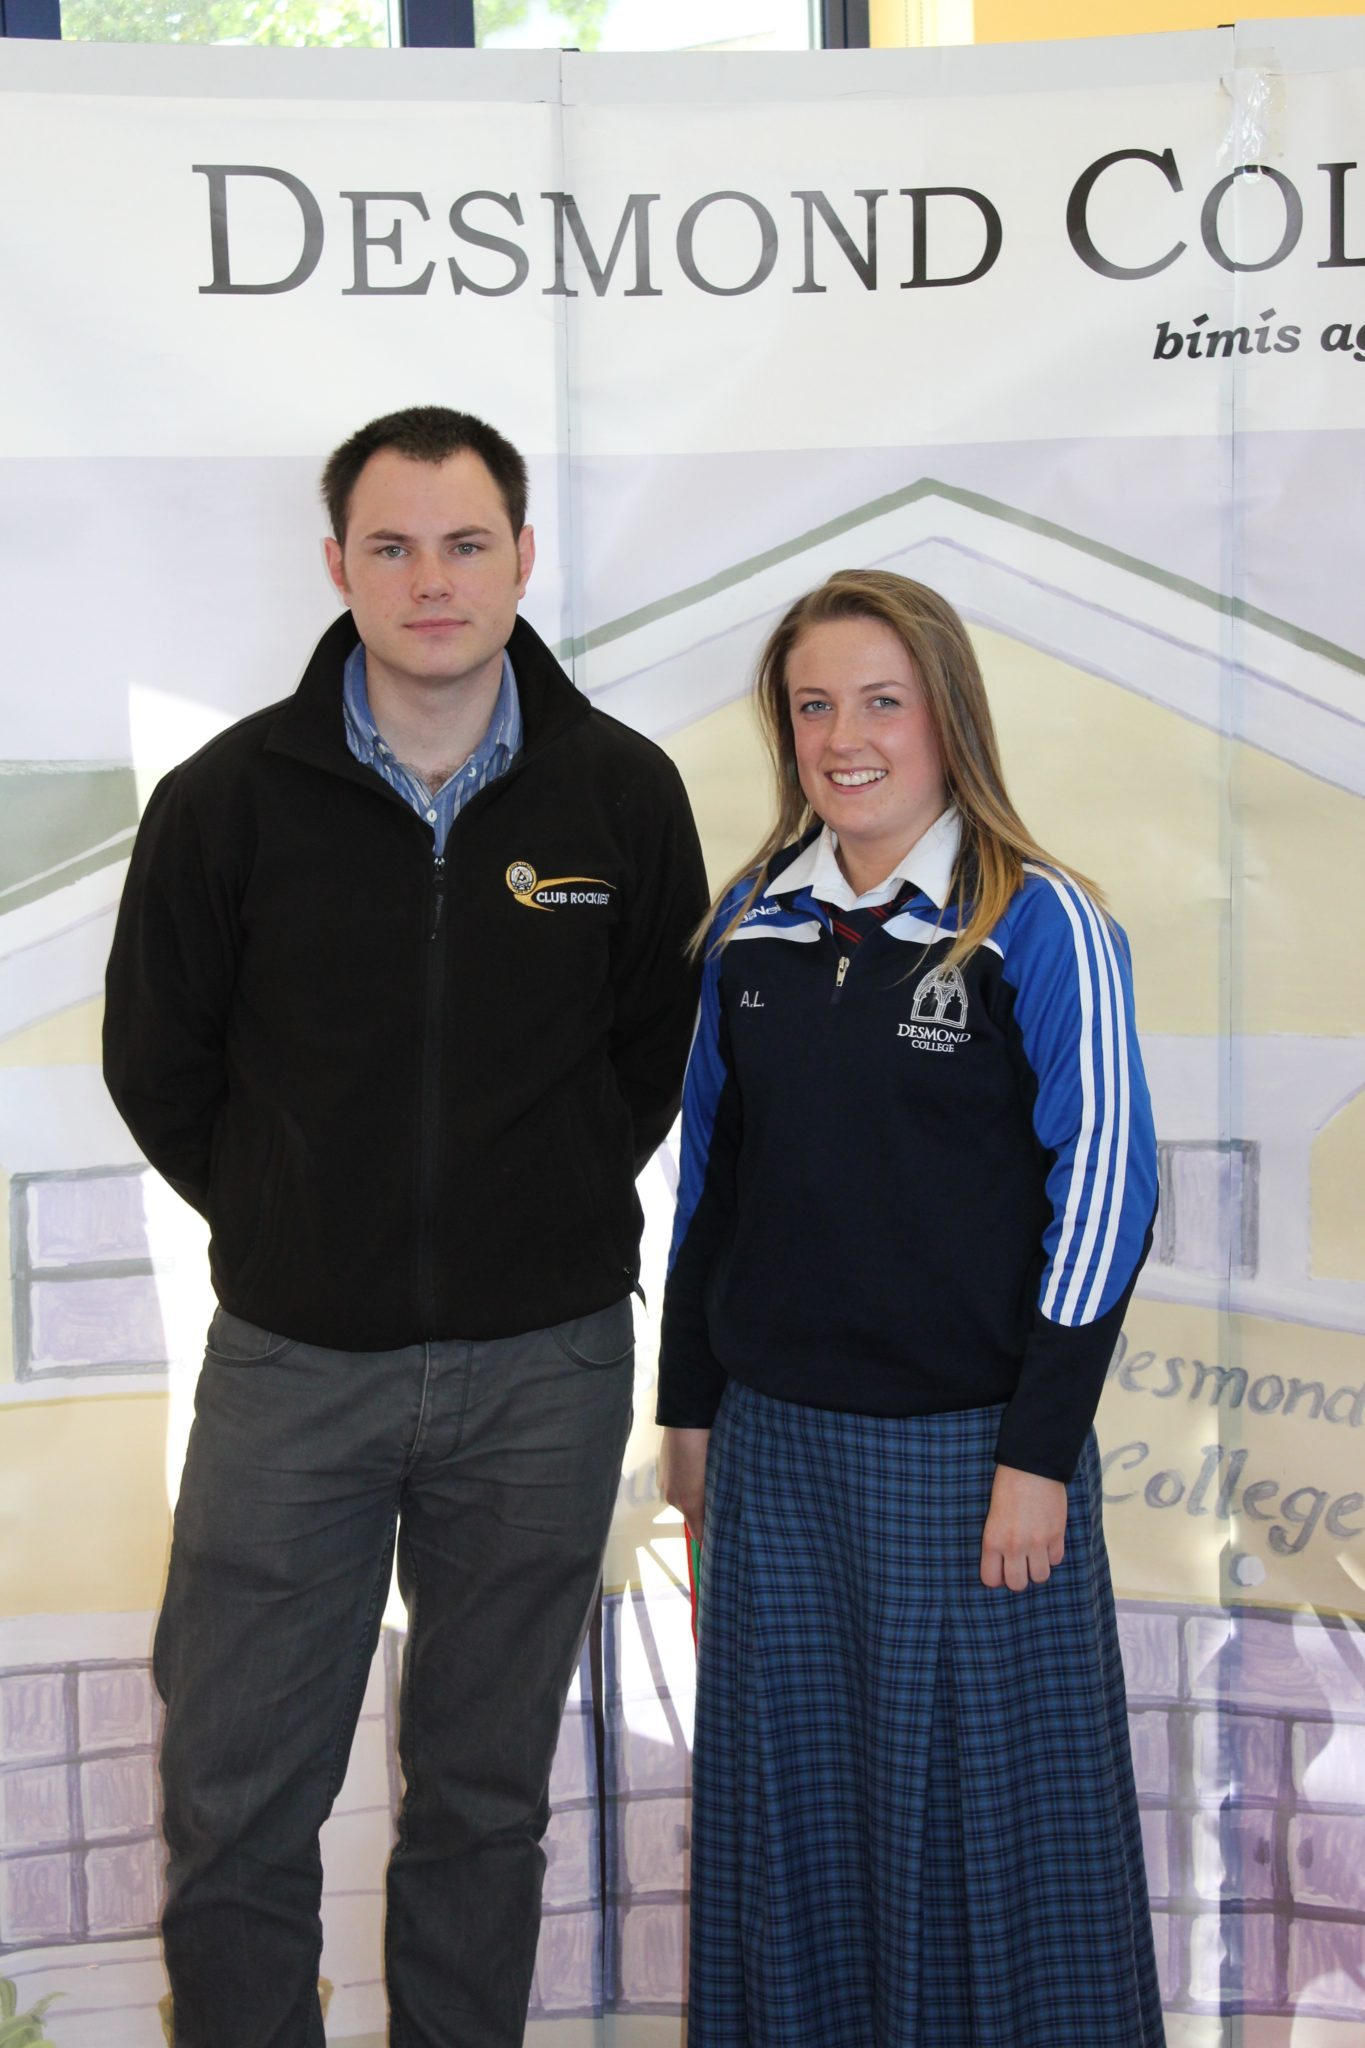 Desmond College Student Awards: May 2015: SPORTS AWARDS 2nd year : Mr King with Aoife Larkin